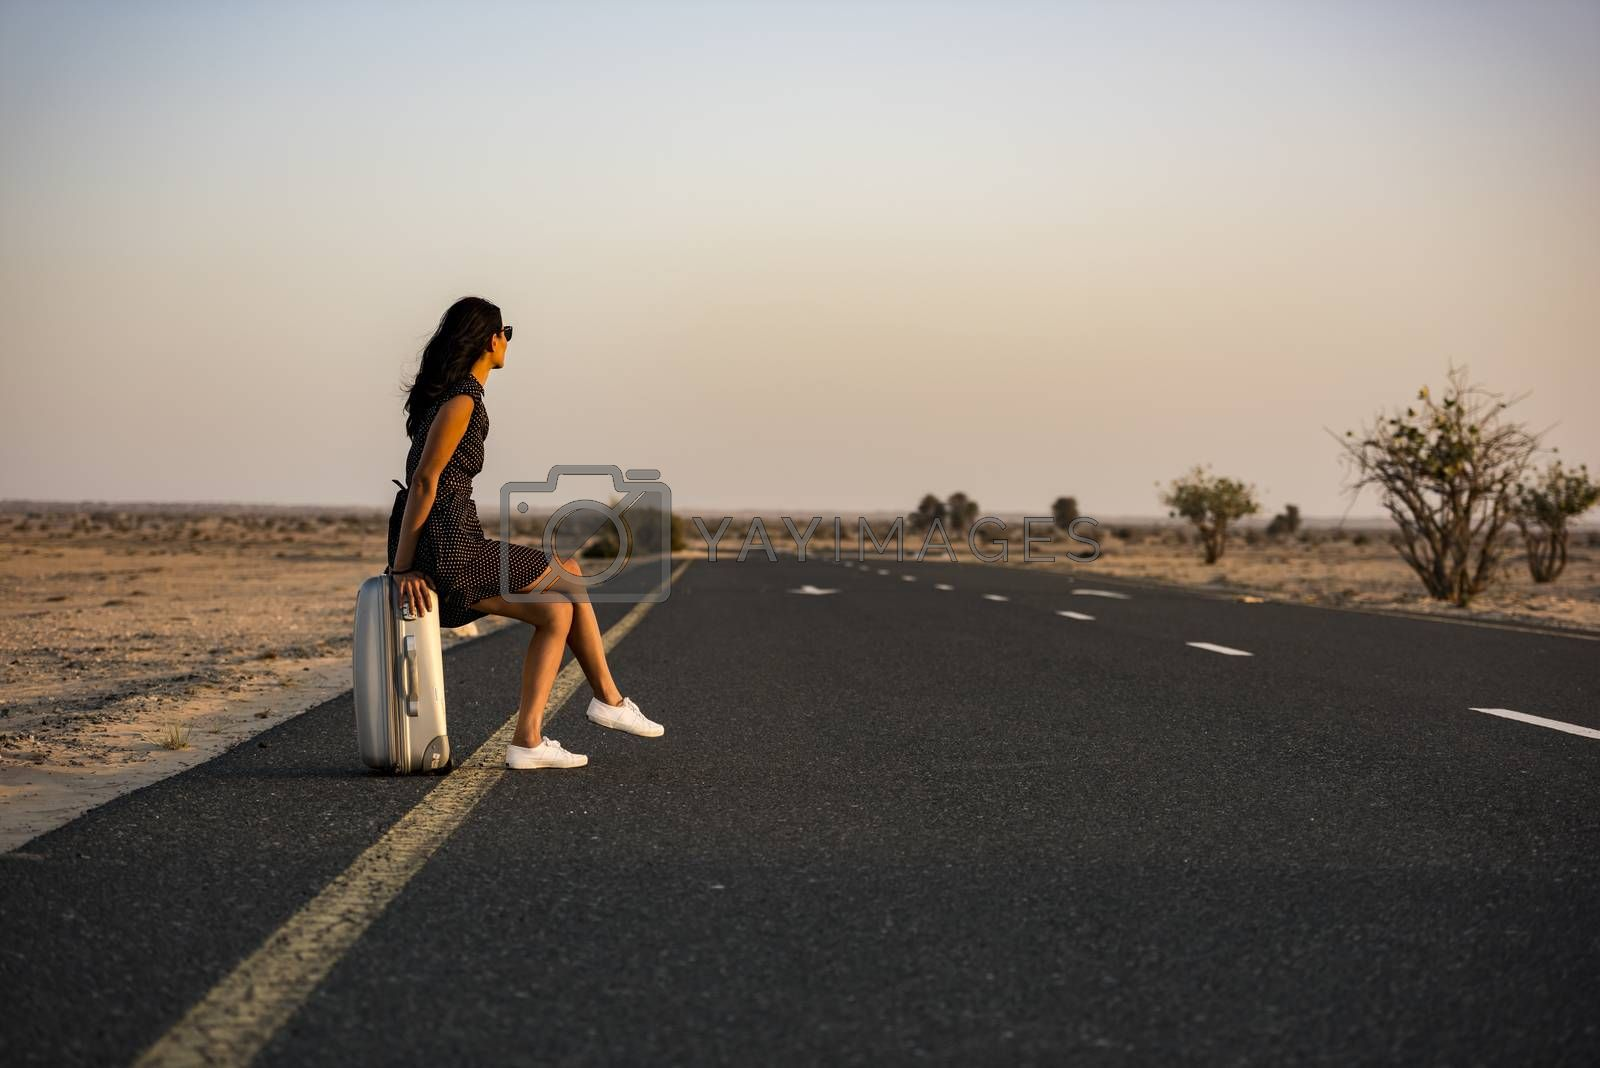 Woman waiting with her luggage on rural road in the desert for a lift or a vehicle to come